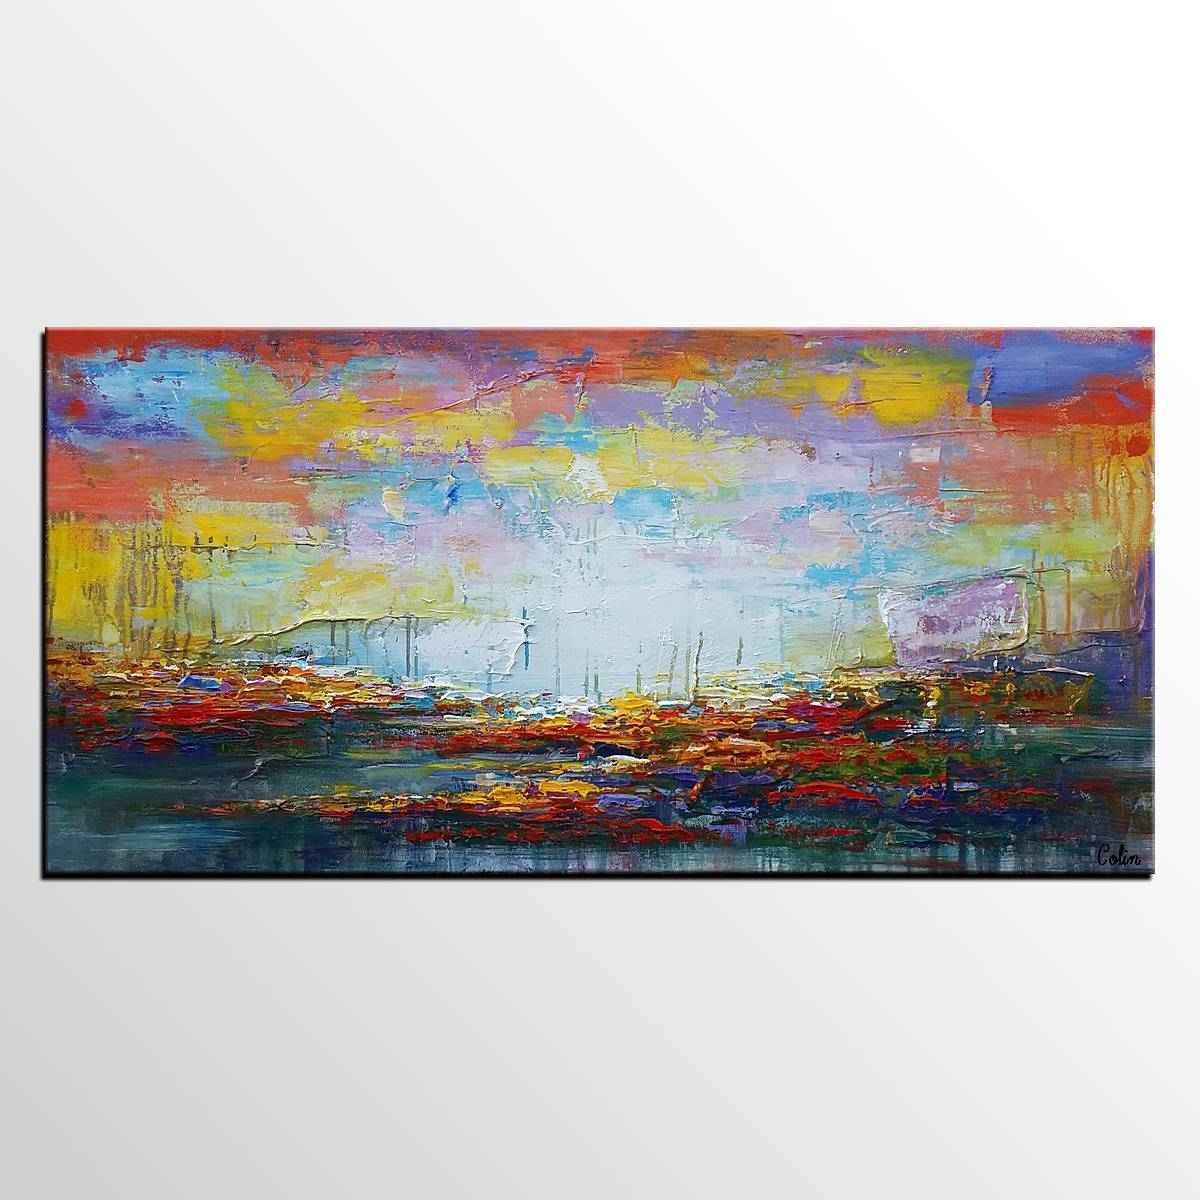 Large Wall Art, Original Painting, Landscape Painting, Large Art Regarding Newest Huge Wall Art Canvas (View 12 of 20)